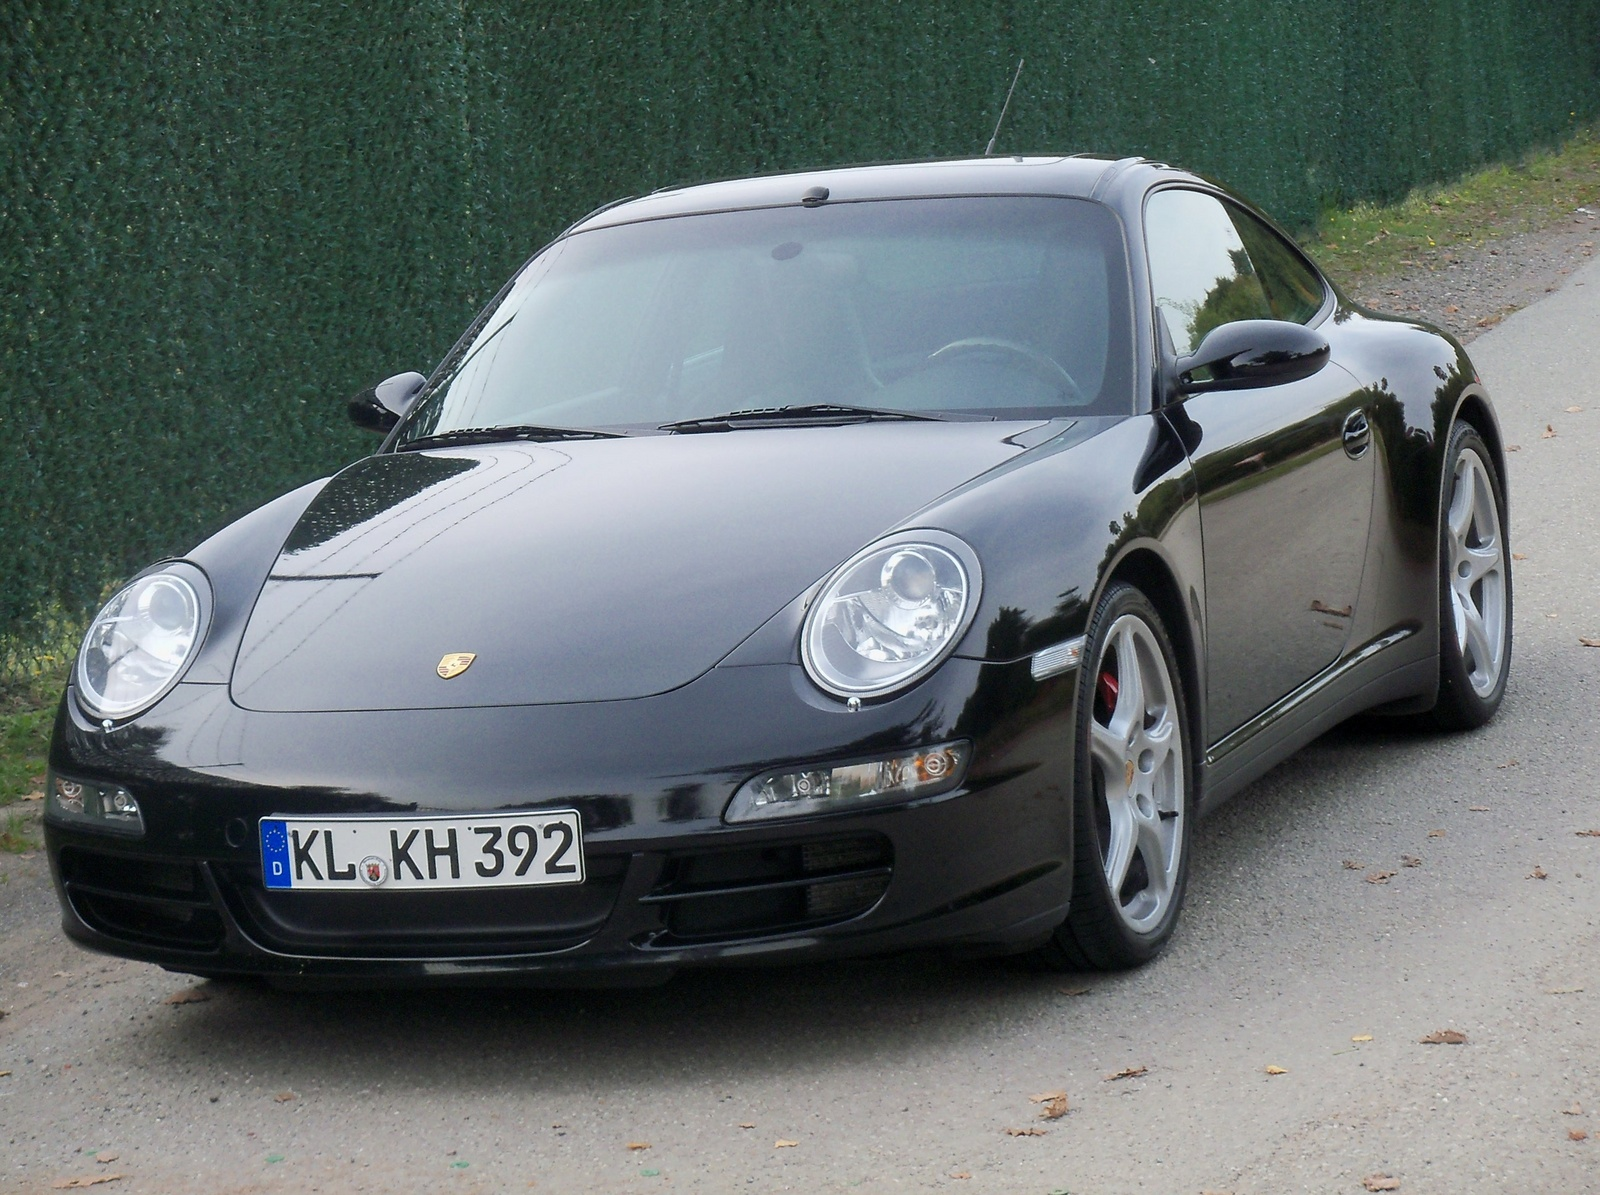 2006 porsche 911 carrera 4s coupe xxi century cars. Black Bedroom Furniture Sets. Home Design Ideas